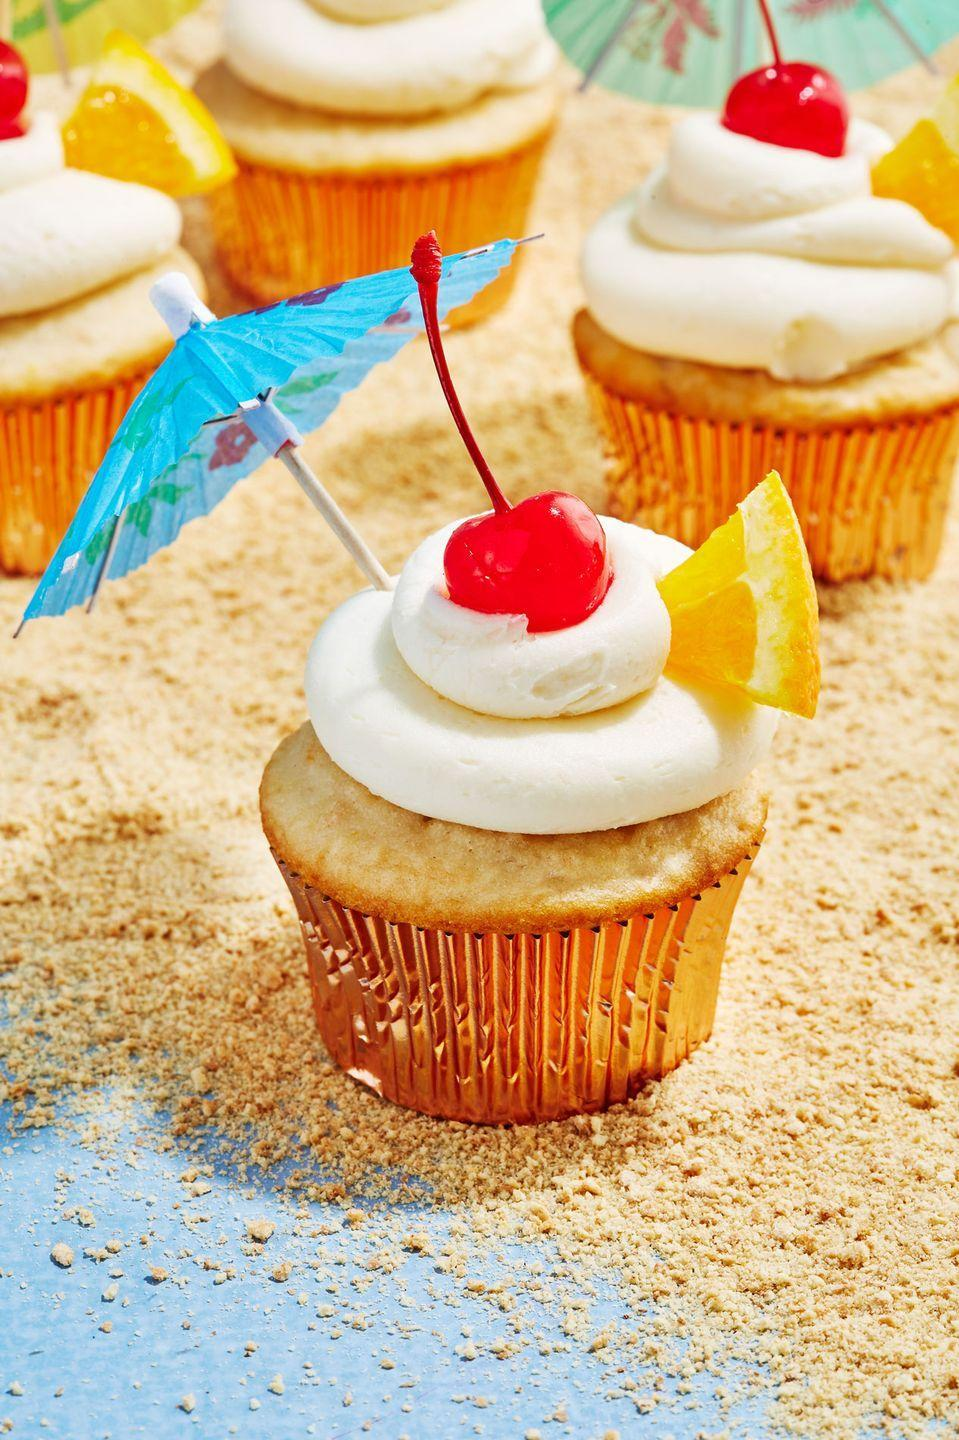 """<p>This cupcake immediately takes you on a tropical vacation.</p><p>Get the recipe from <a href=""""https://www.delish.com/cooking/recipe-ideas/a19487384/bahama-mama-cupcakes-recipe/"""" rel=""""nofollow noopener"""" target=""""_blank"""" data-ylk=""""slk:Delish"""" class=""""link rapid-noclick-resp"""">Delish</a>. </p>"""